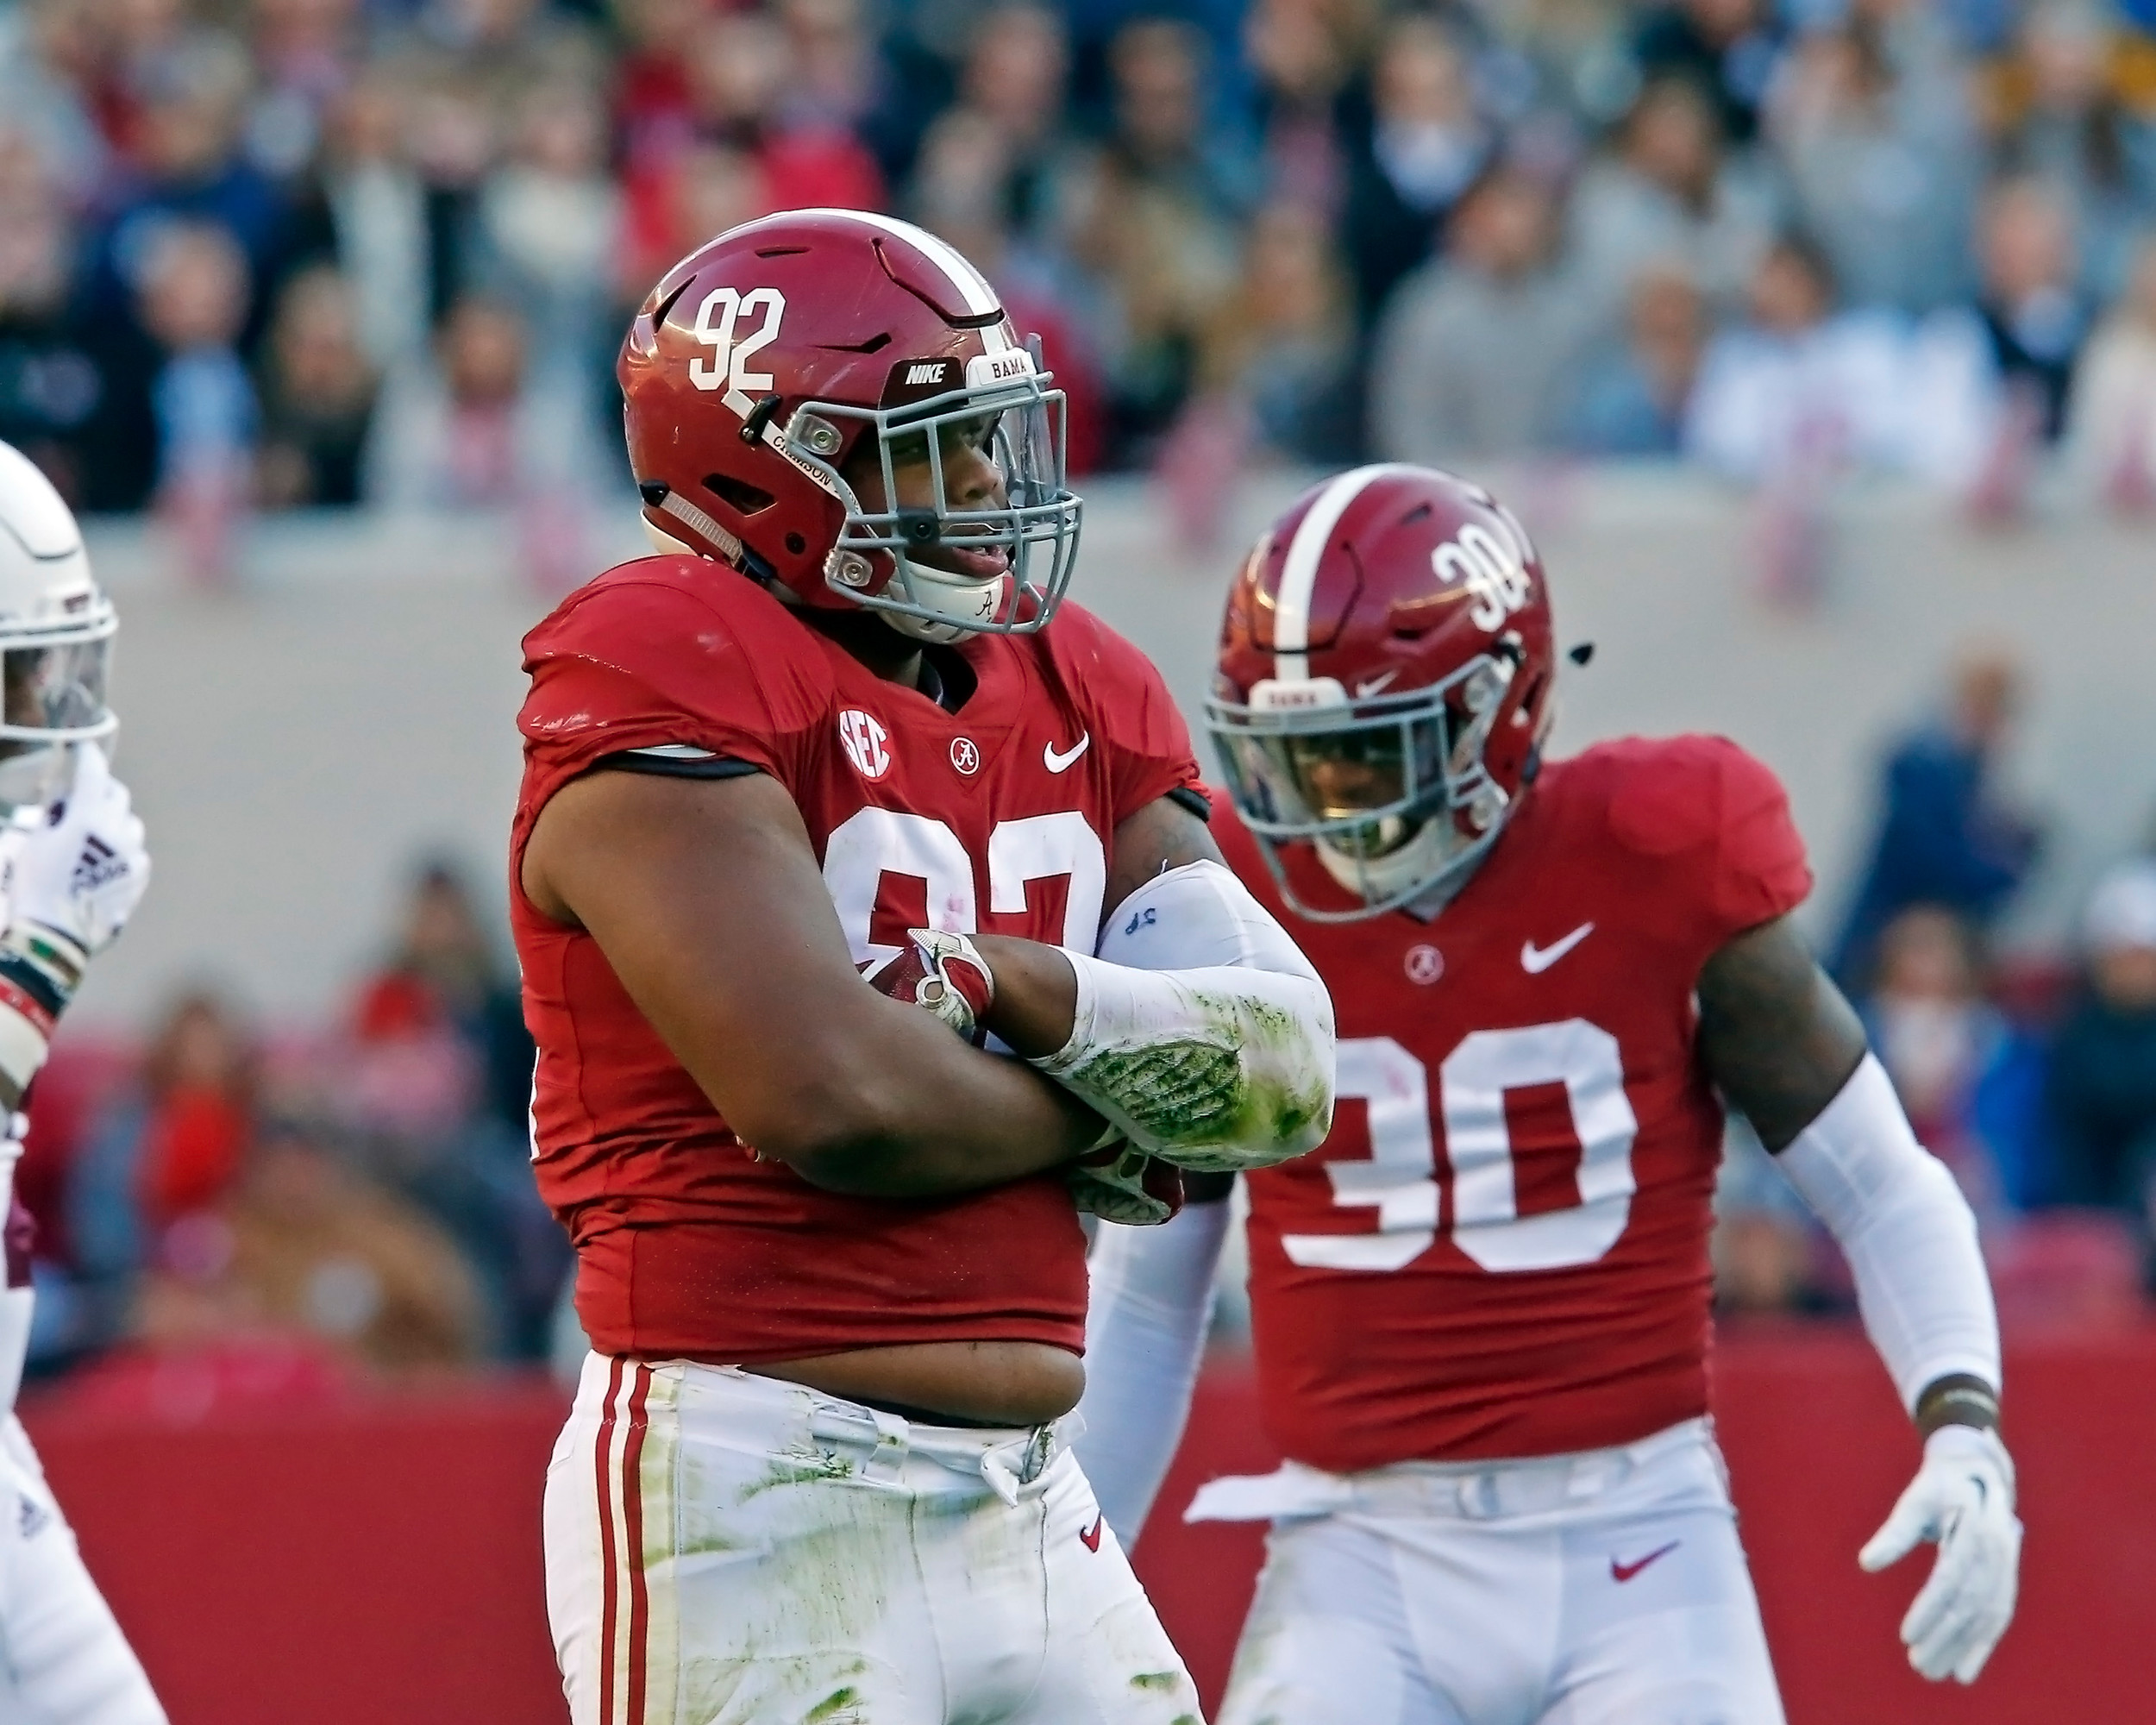 Alabama Crimson Tide defensive lineman Quinnen Williams (92) poses after a big tackle for loss during the game between Mississippi State and the University of Alabama at Bryant-Denny Stadium in Tuscaloosa, Al. Credit: Jason Clark / Daily Mountain Eagle